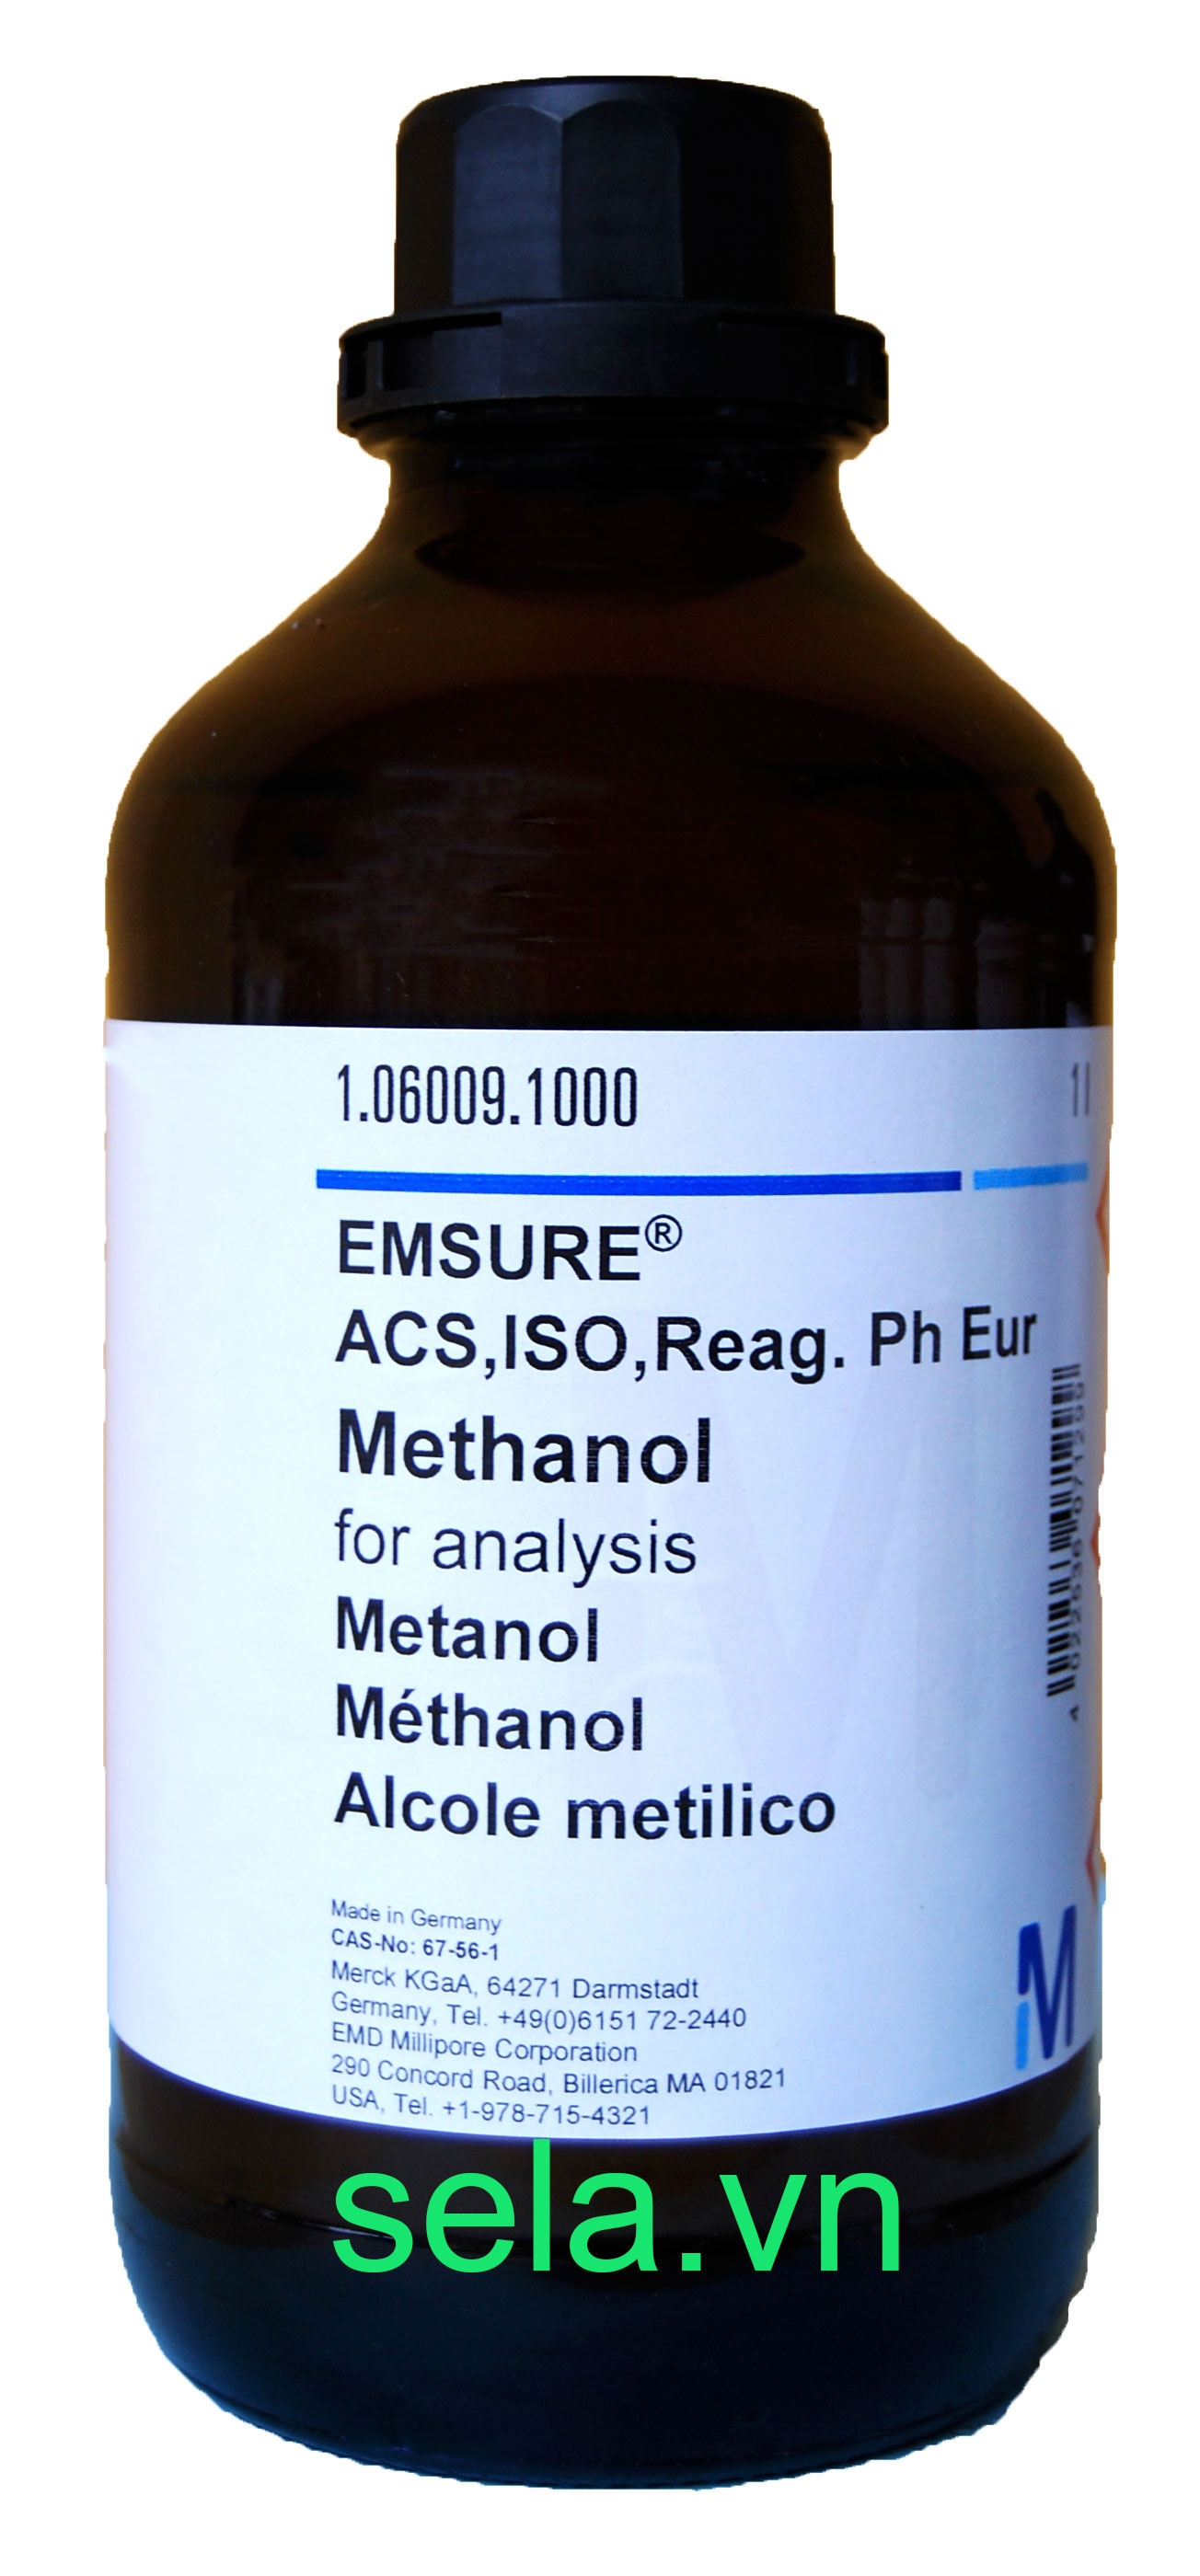 Methanol for analysis EMSURE® ACS,ISO,Reag.Ph Eur